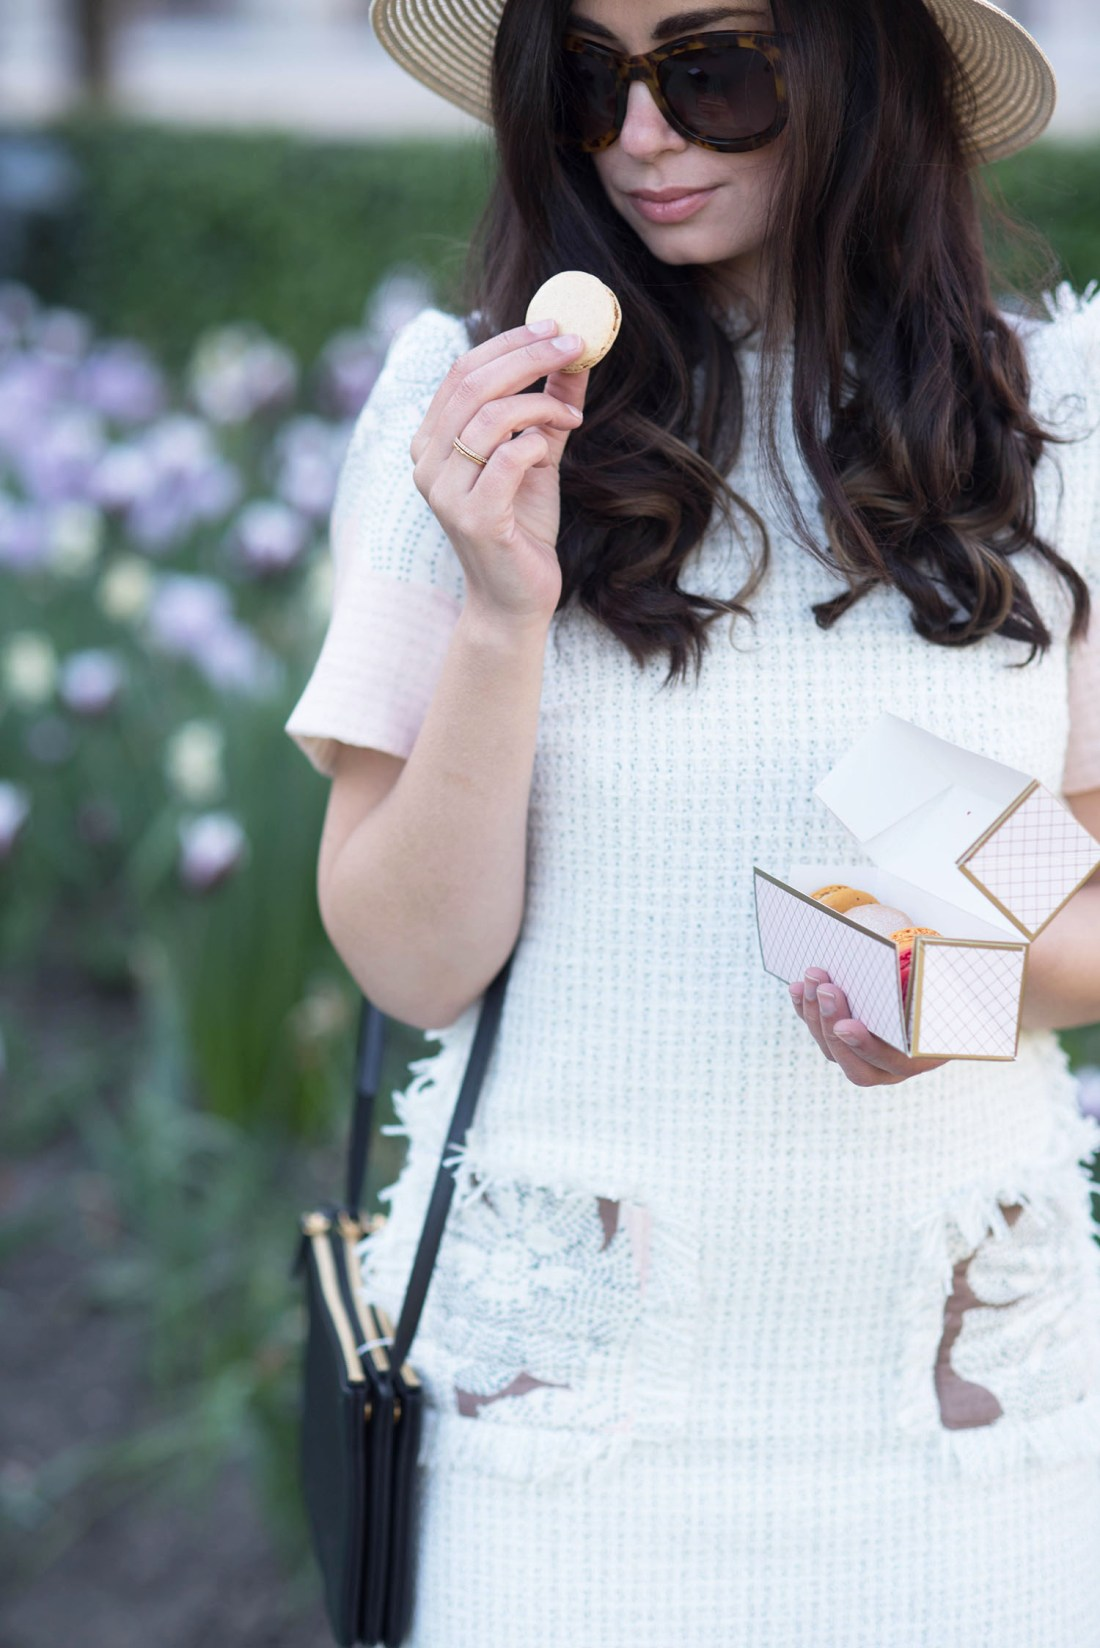 Winnipeg style blogger Cee Fardoe of Coco & Vera eats Cafe Pouchkine macarons in Paris wearing Anine Bing sunglasses and a Floriane Fosso dress